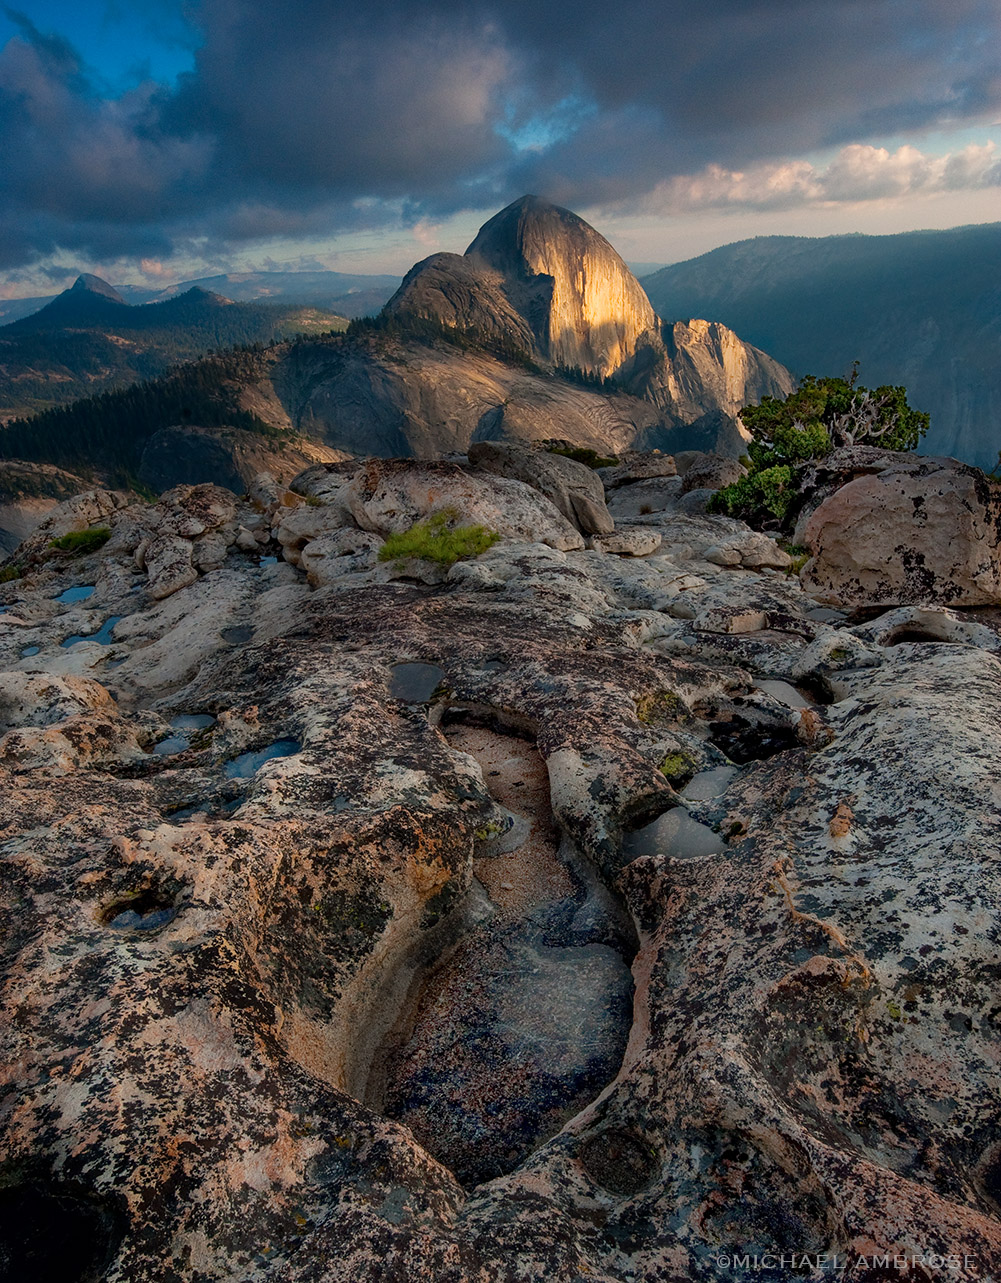 The back side of Half Dome as viewed from the summit of Mout Watkins at sunset in Yosemite National Park.